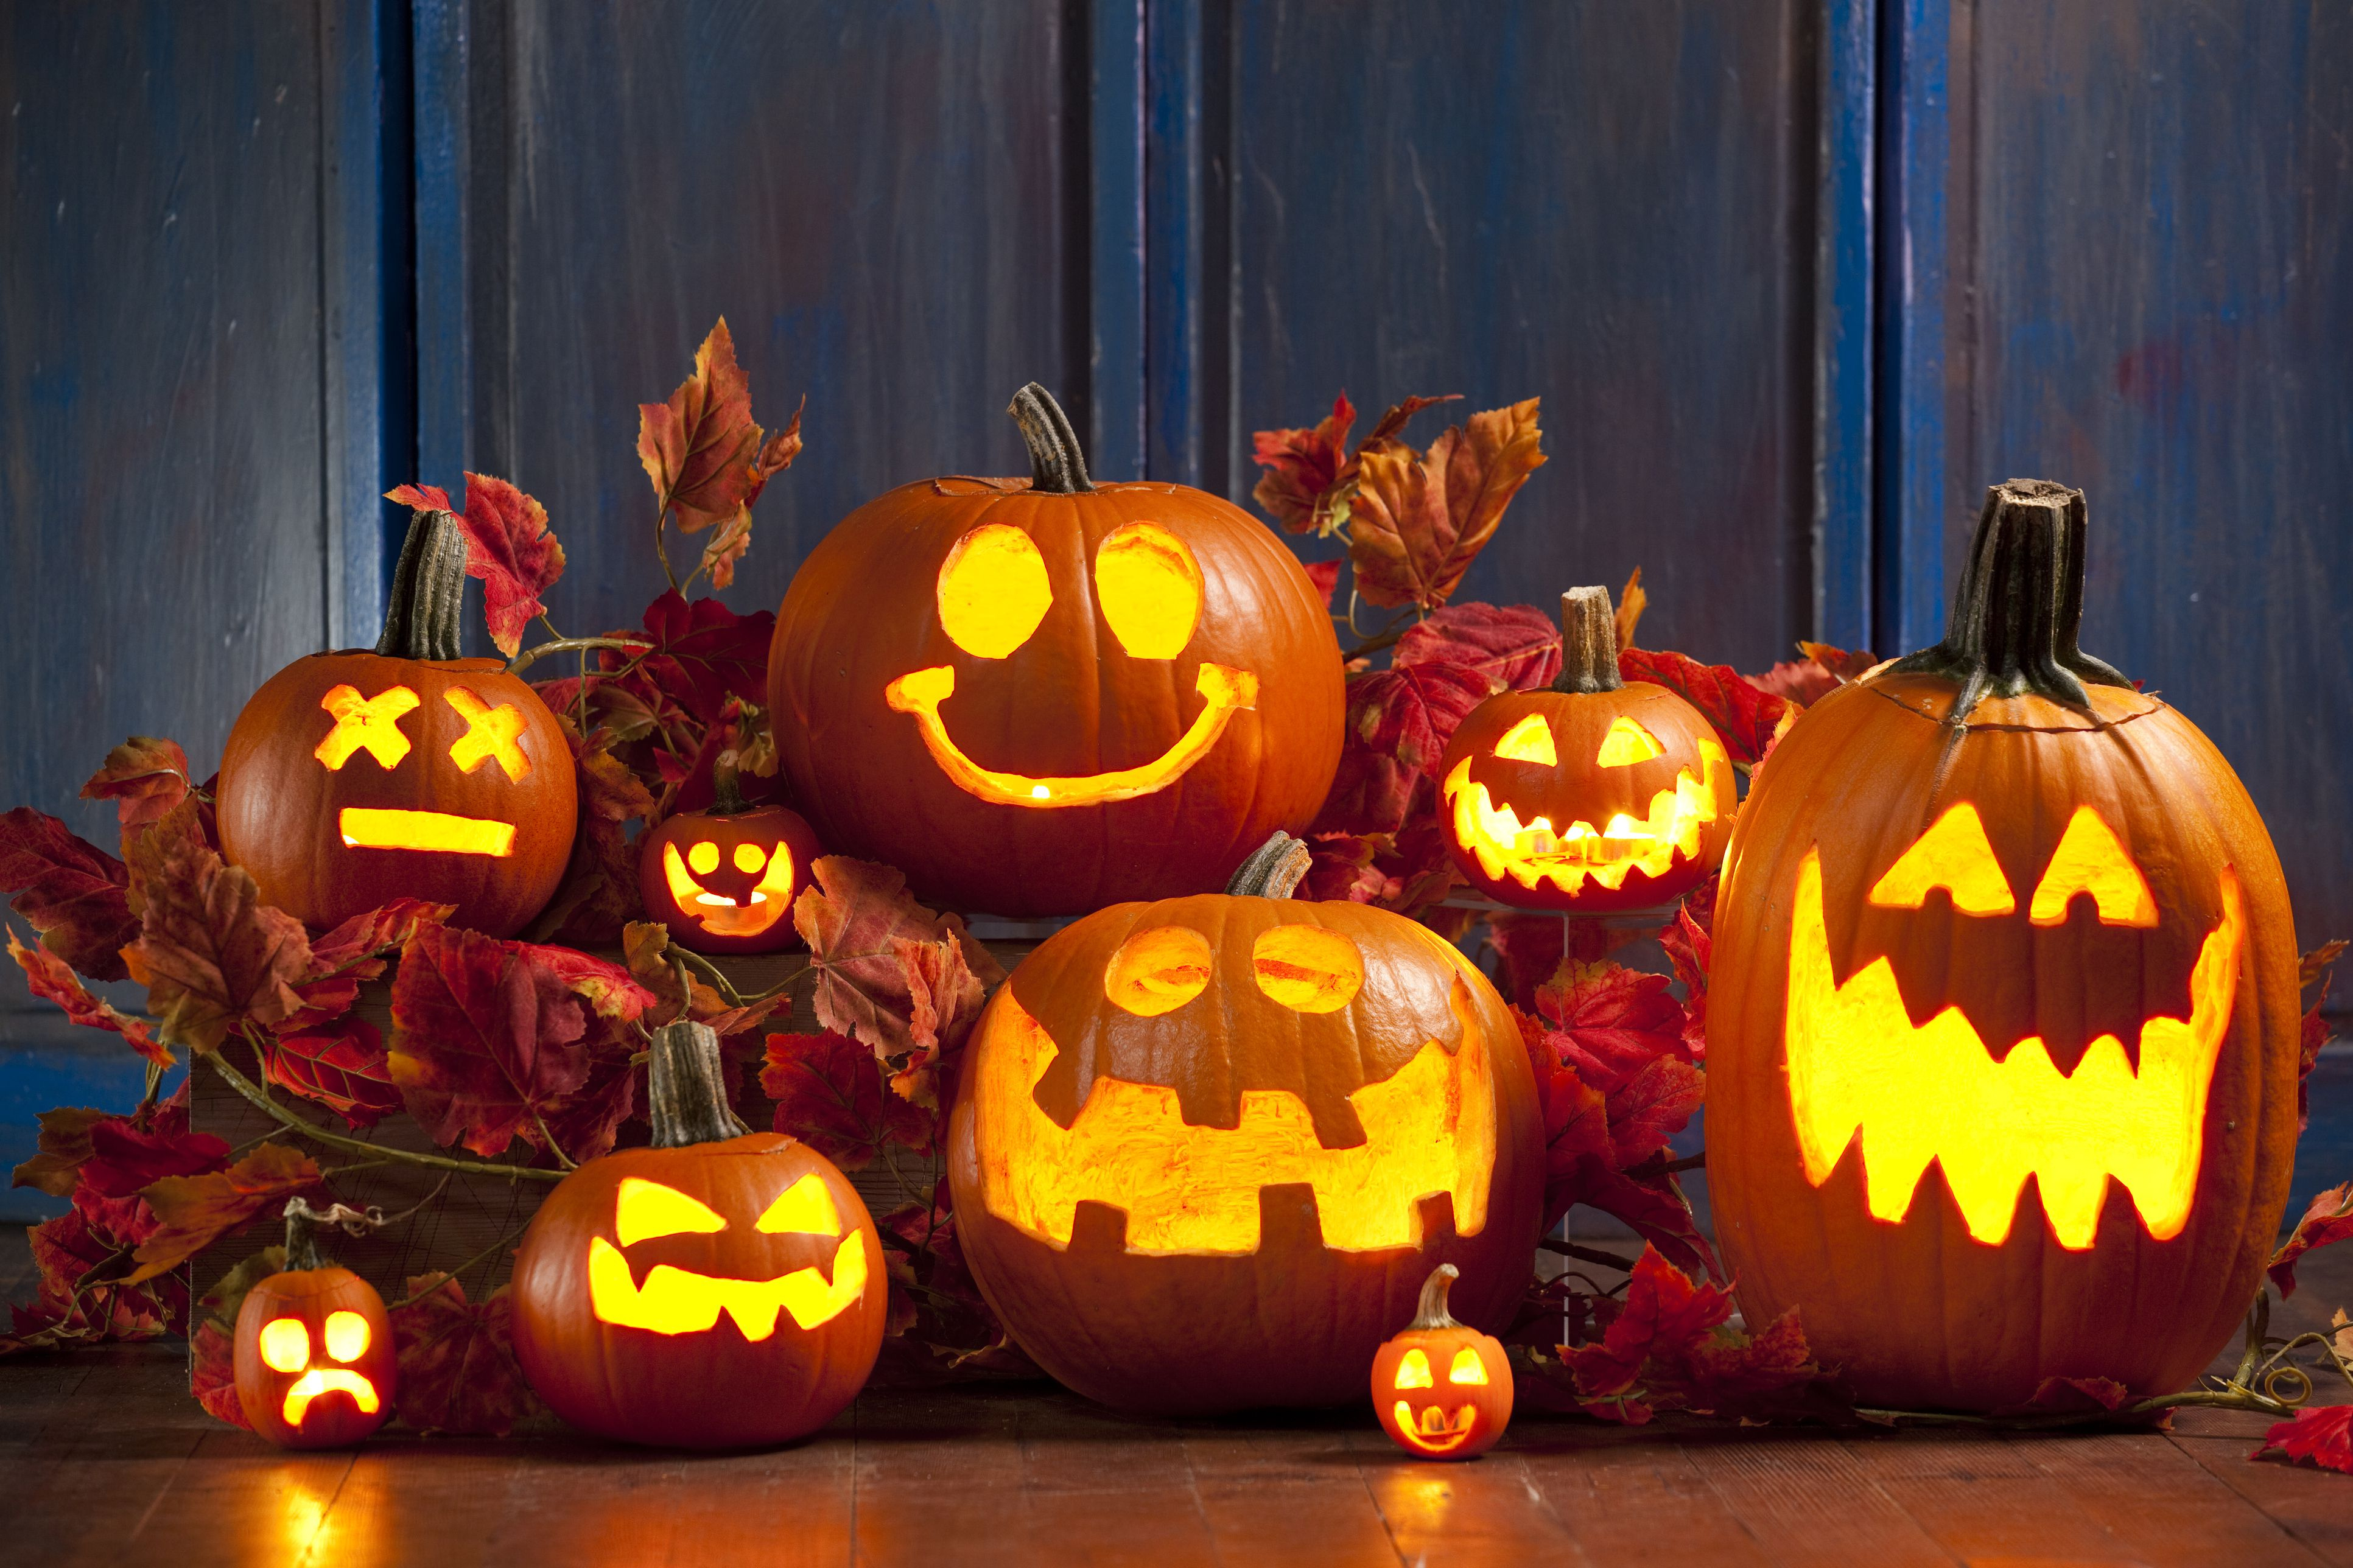 Free Pumpkin Carving Patterns And Templates For Halloween - Scary Pumpkin Patterns Free Printable